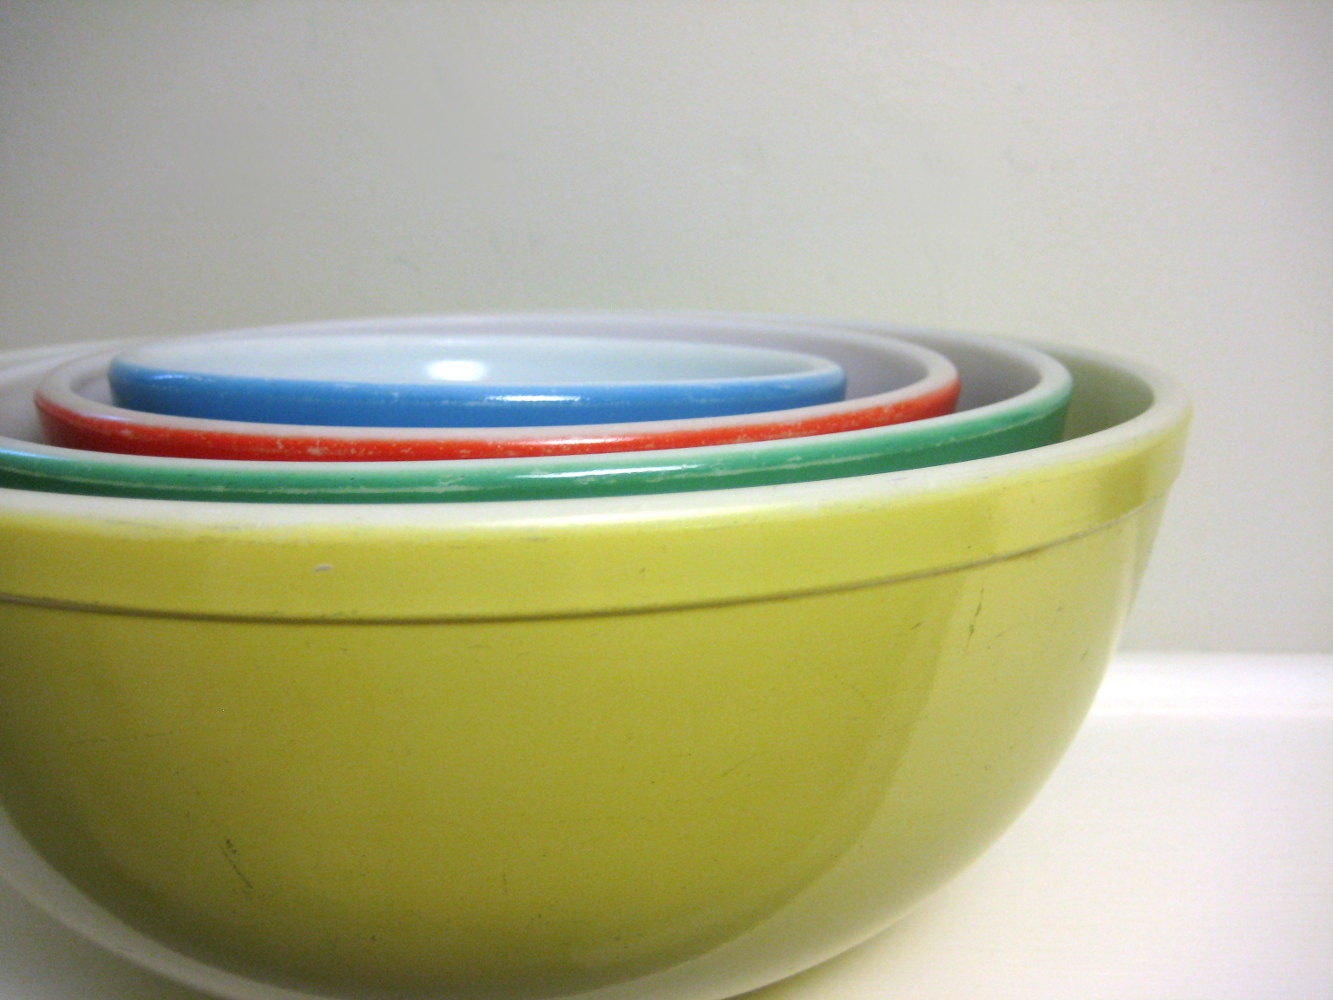 dating pyrex primary bowls Find great deals on ebay for pyrex mixing bowls primary colors and pyrex primary colors mixing bowl set shop with confidence.